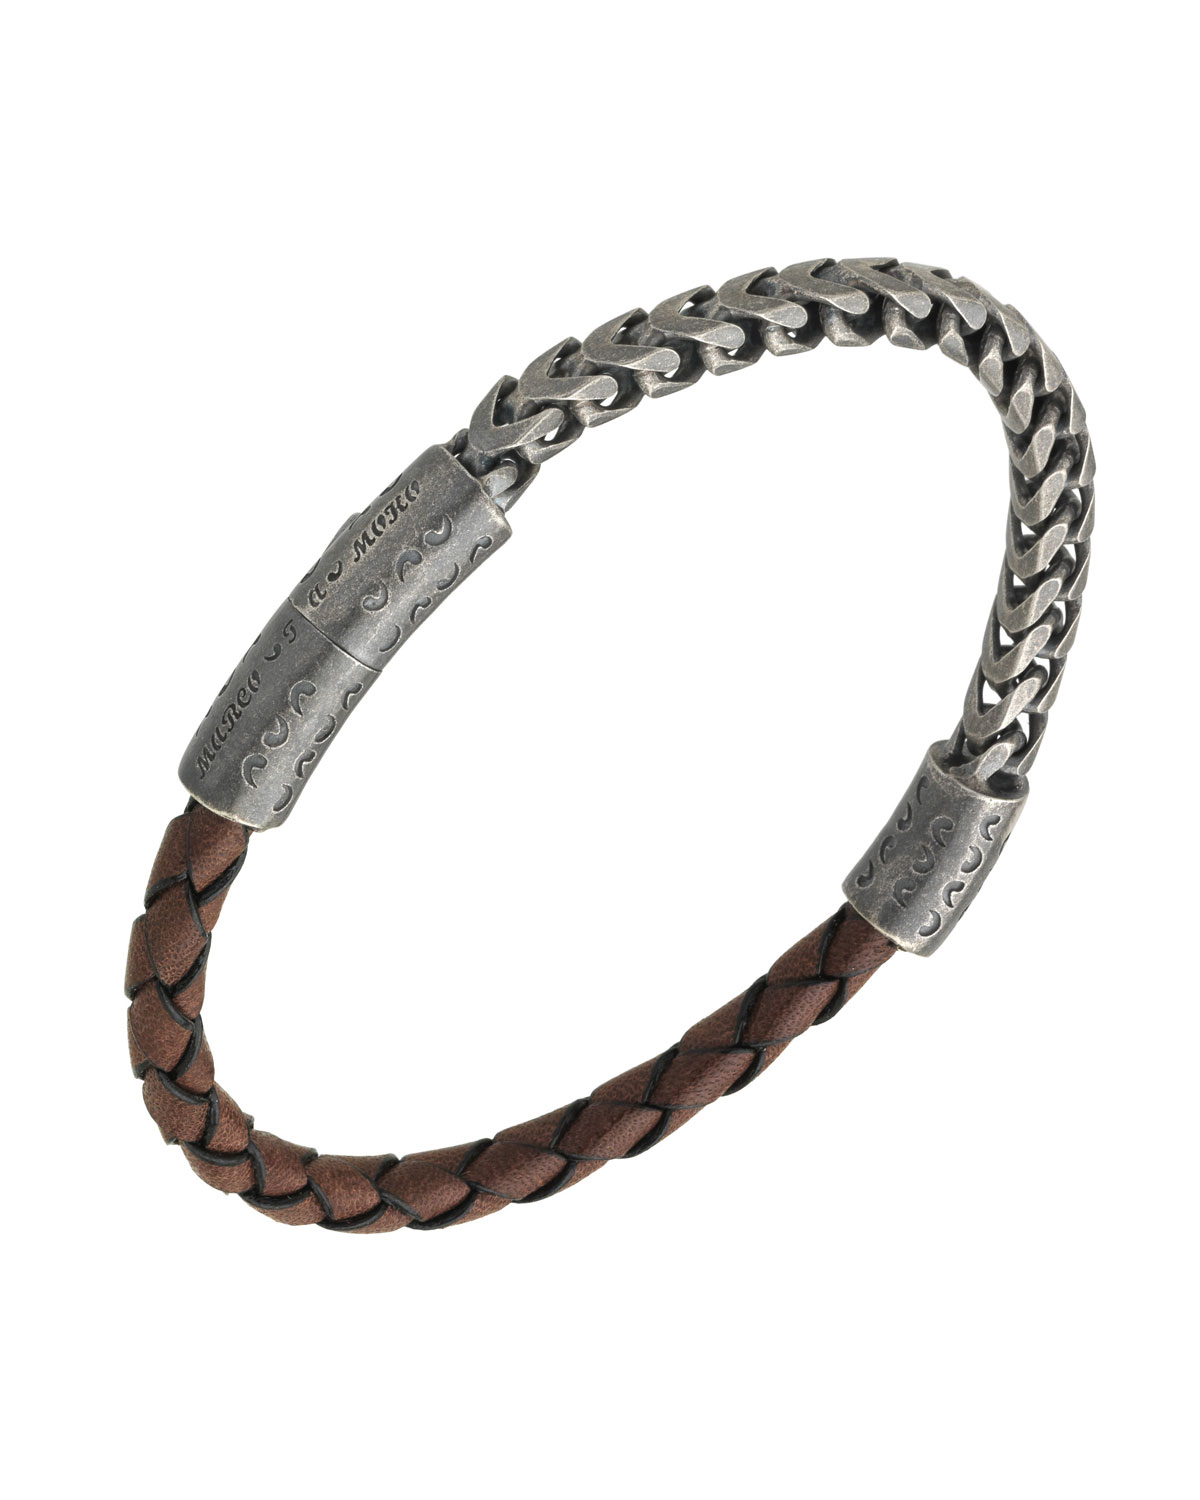 MARCO DAL MASO MEN'S STERLING SILVER & LEATHER BRACELET WITH PUSH-LOCK, BROWN